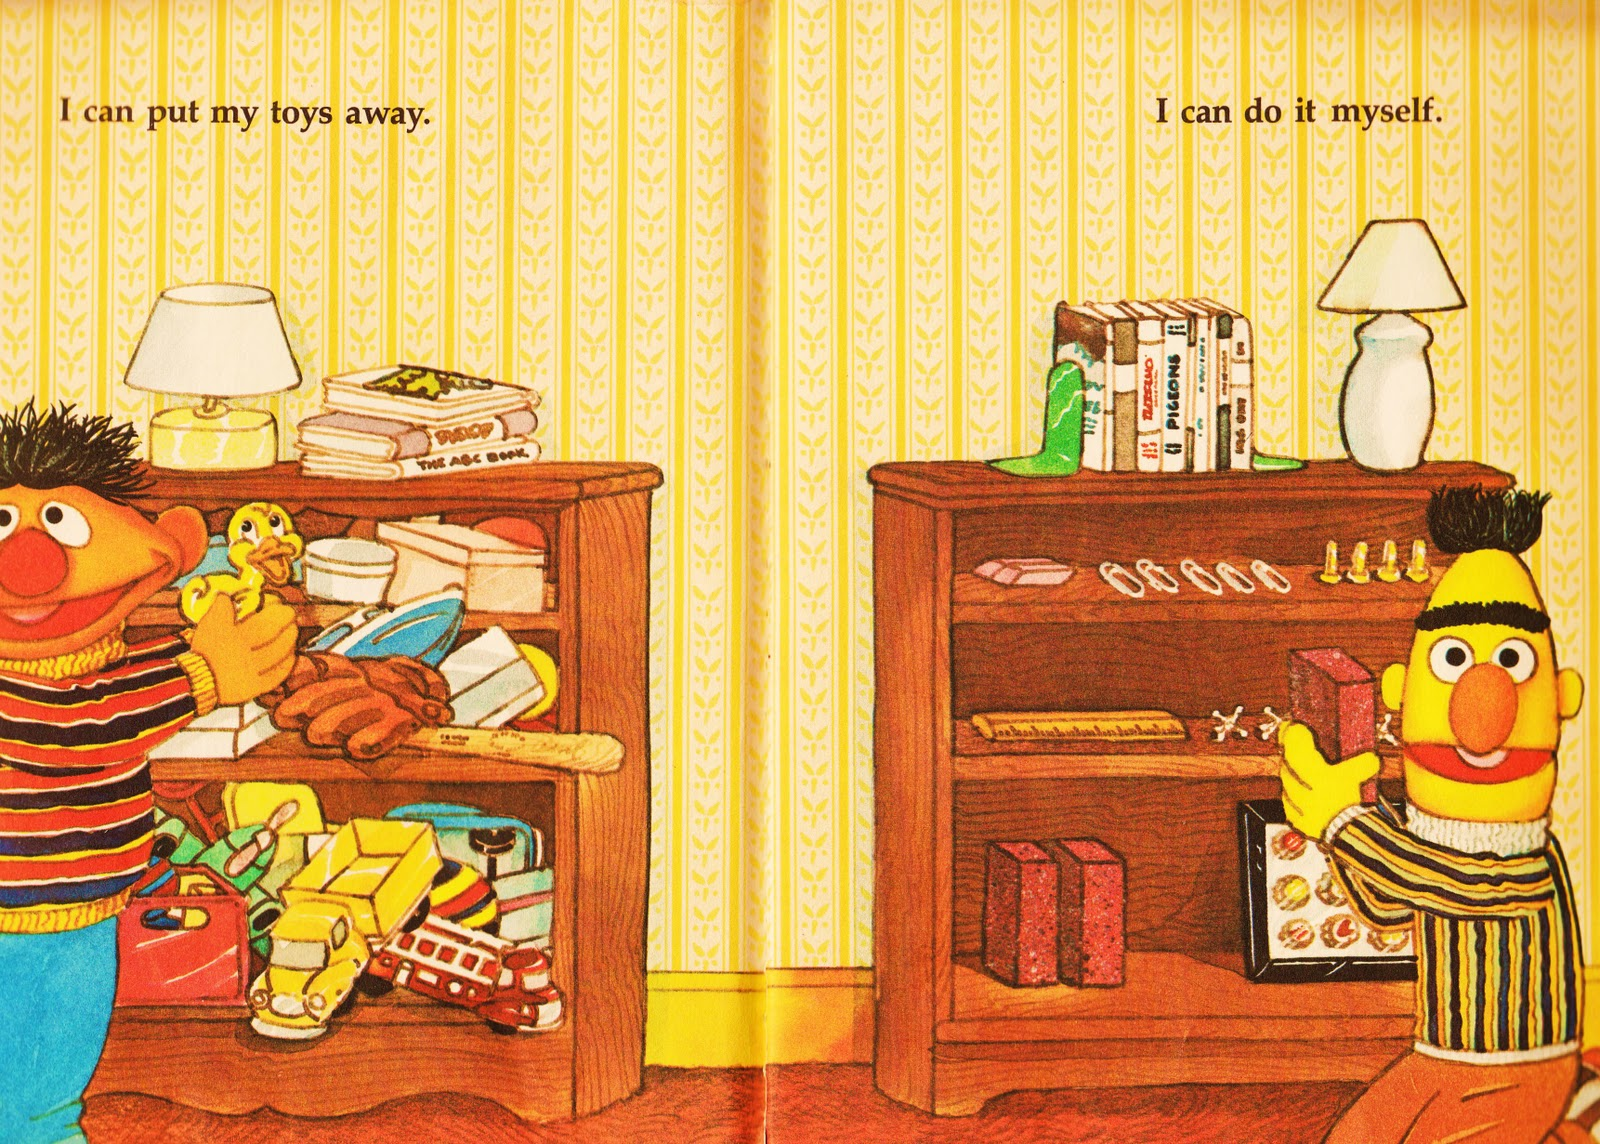 I can do it myself by emily perl kingsleyillustrated by richard i can do it myself by emily perl kingsleyillustrated by richard brown 1980 solutioingenieria Choice Image